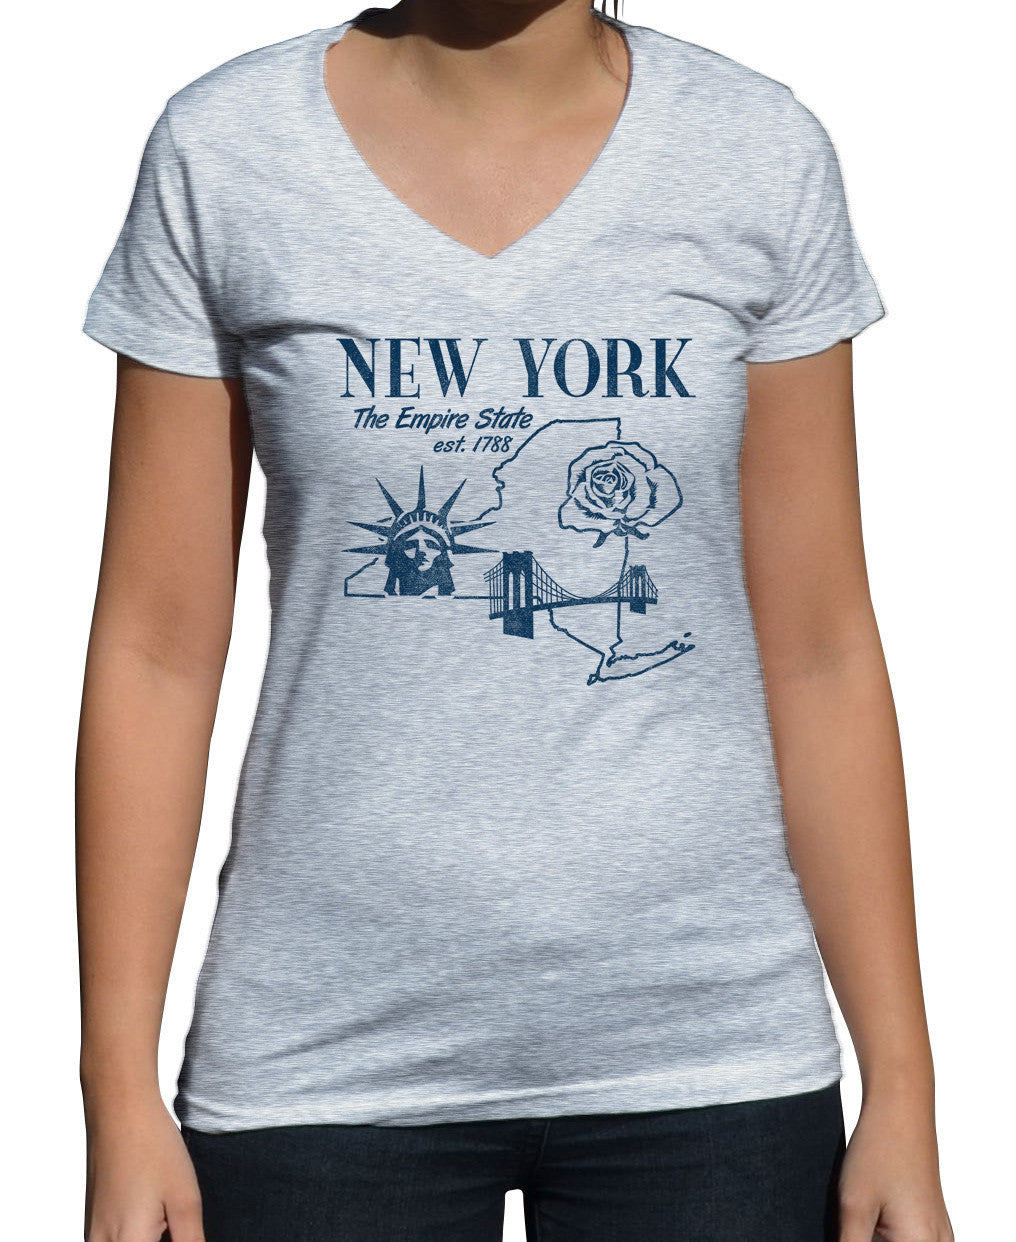 Women's Retro New York Vneck T-Shirt Vintage State Pride